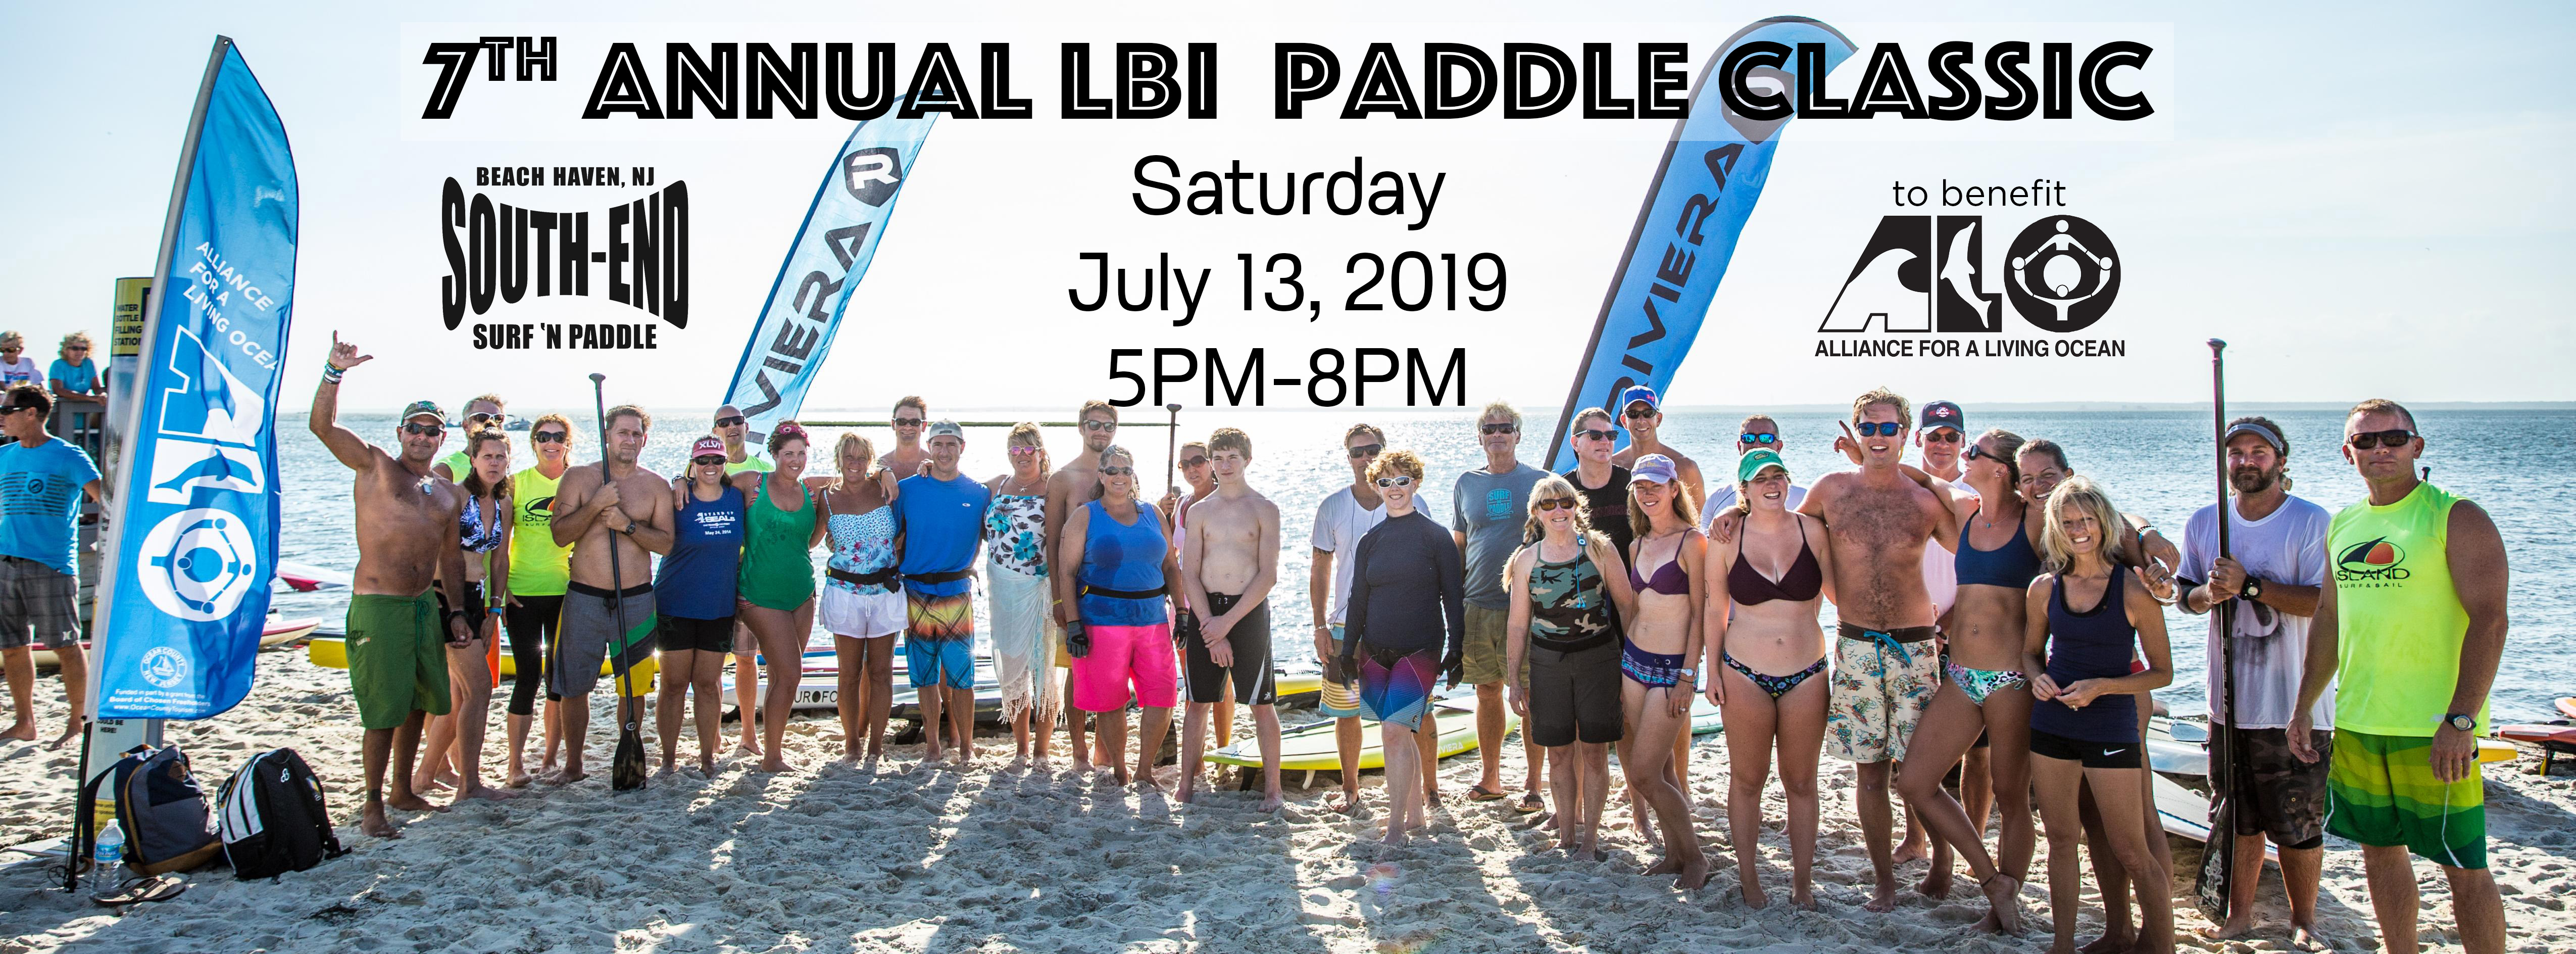 LBI Paddle Race Series - South End Surf 'N Paddle